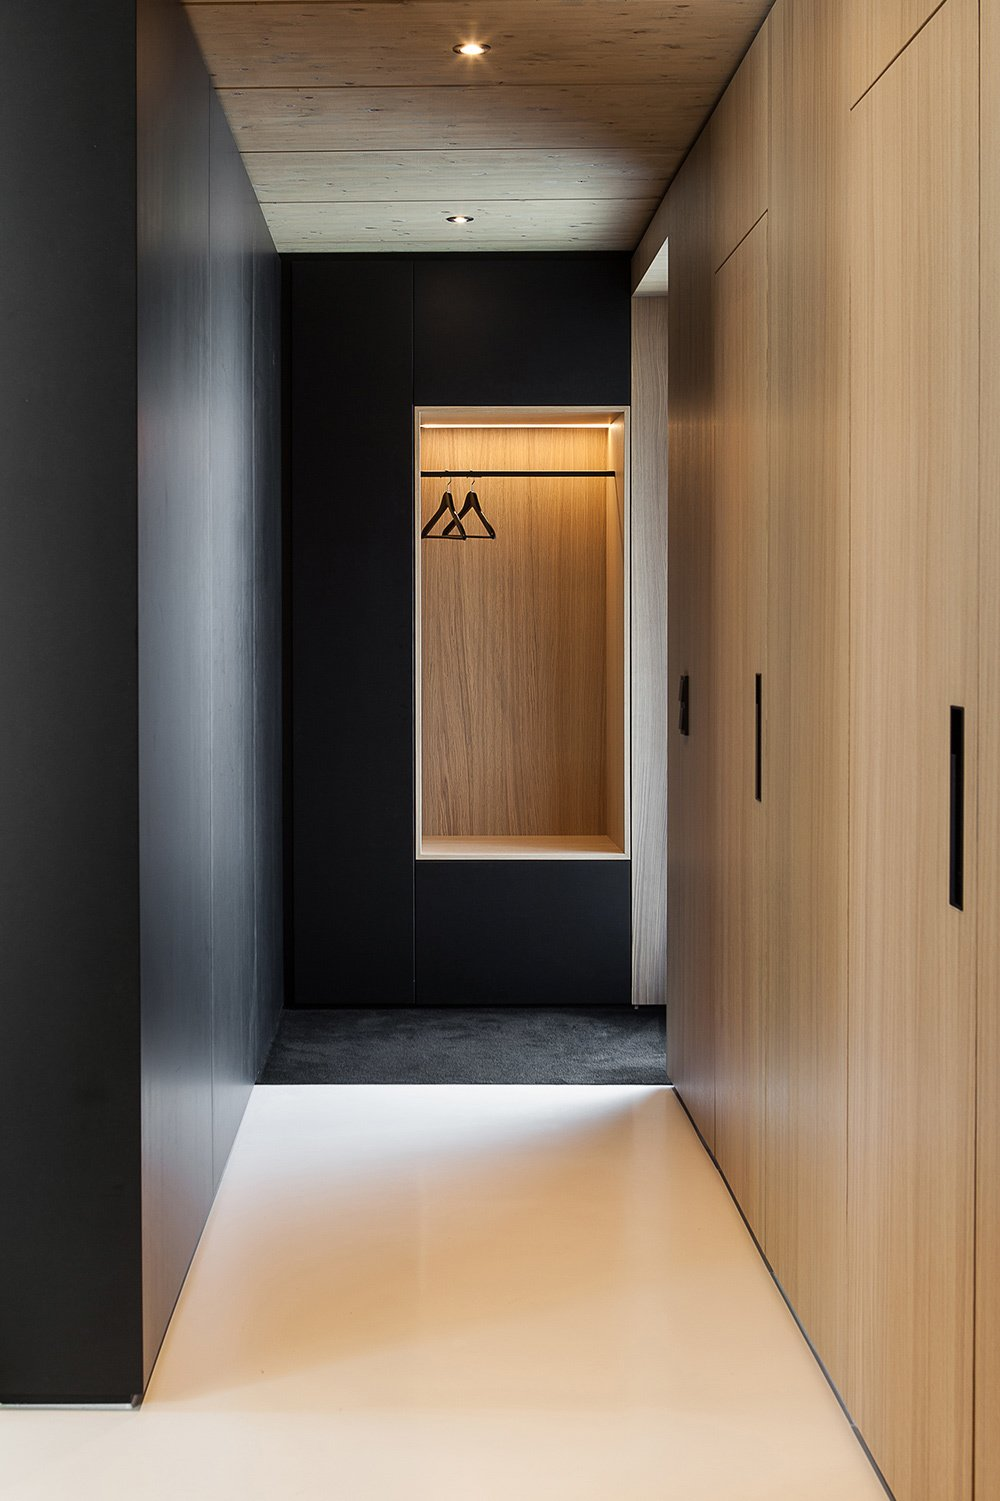 Custom built-in furniture takes design cues from the home's timber frame. The staircase and all built-in storage objects are made of wood. Two black wood units separate the stairwell from the living room and kitchen.